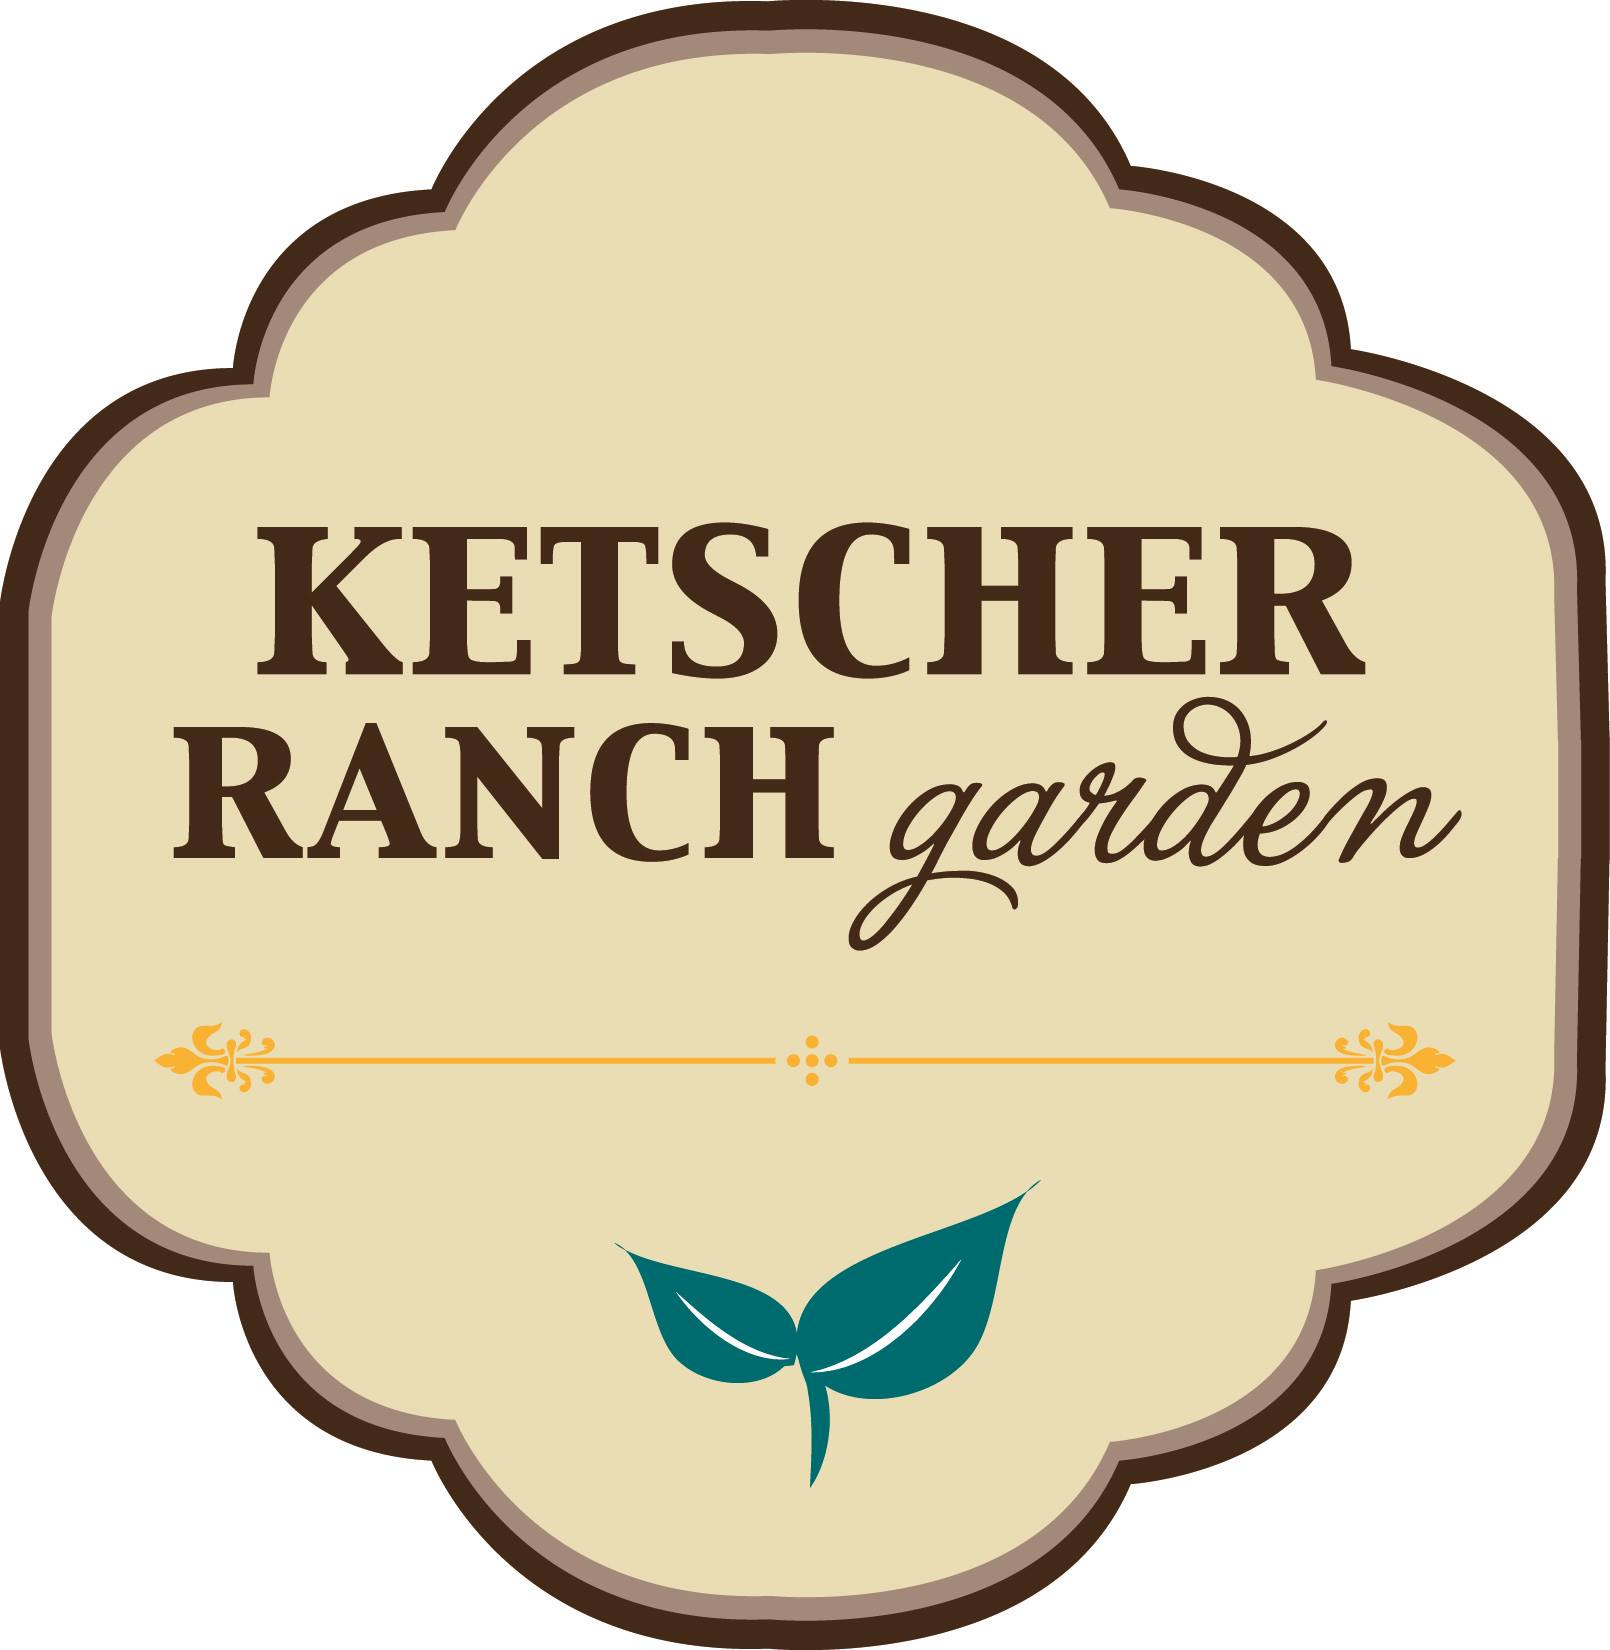 Ketscher Ranch Garden